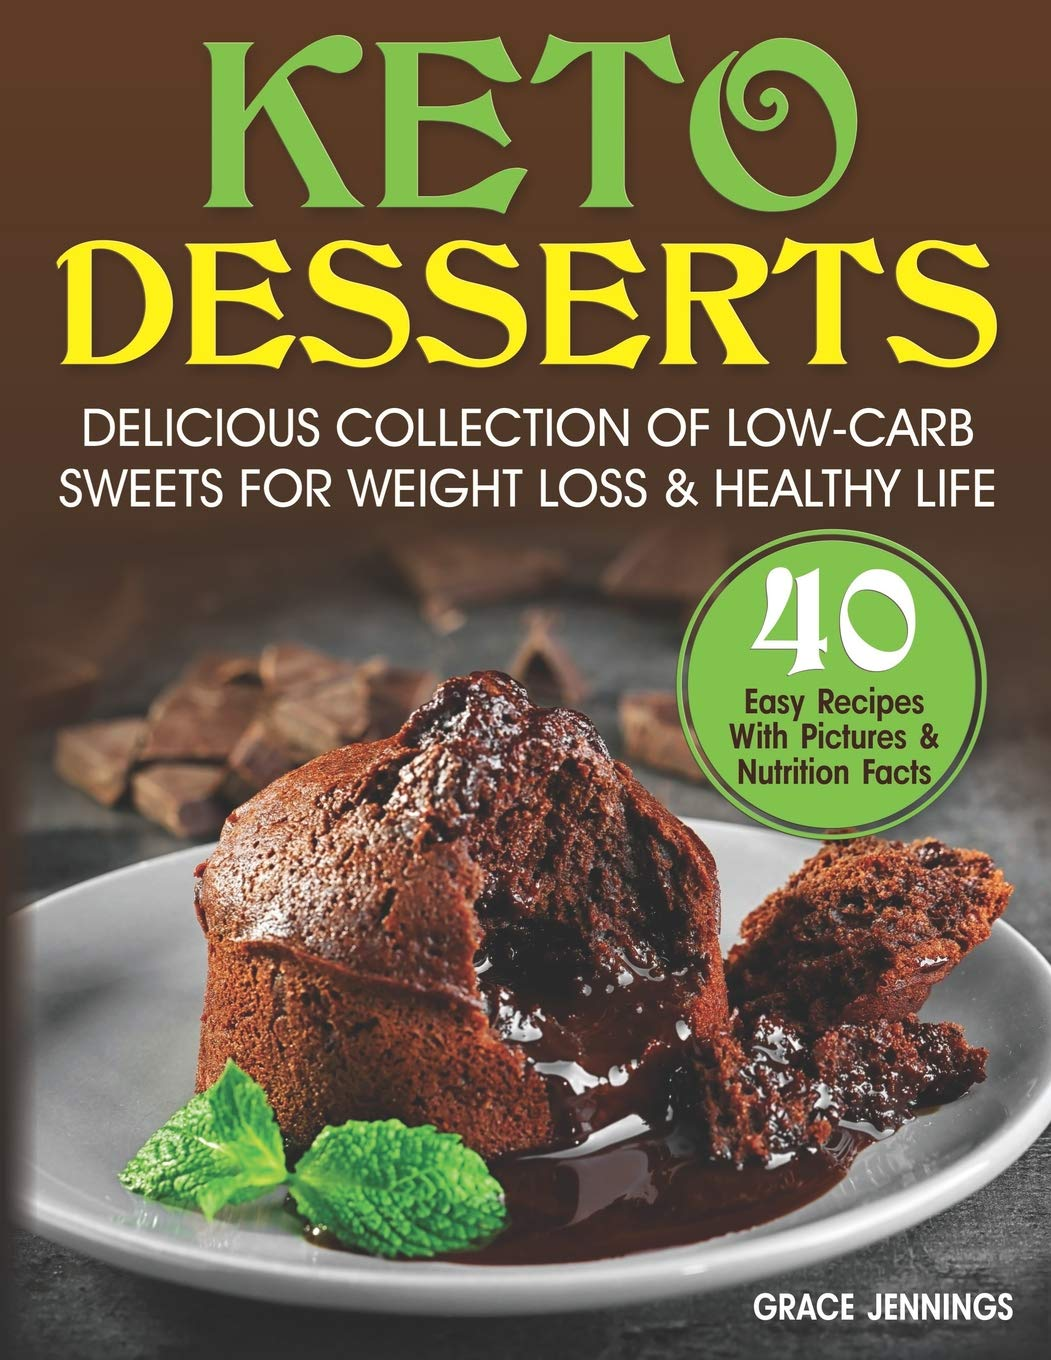 Keto-Friendly Dessert Recipes Keto Sweets Specification